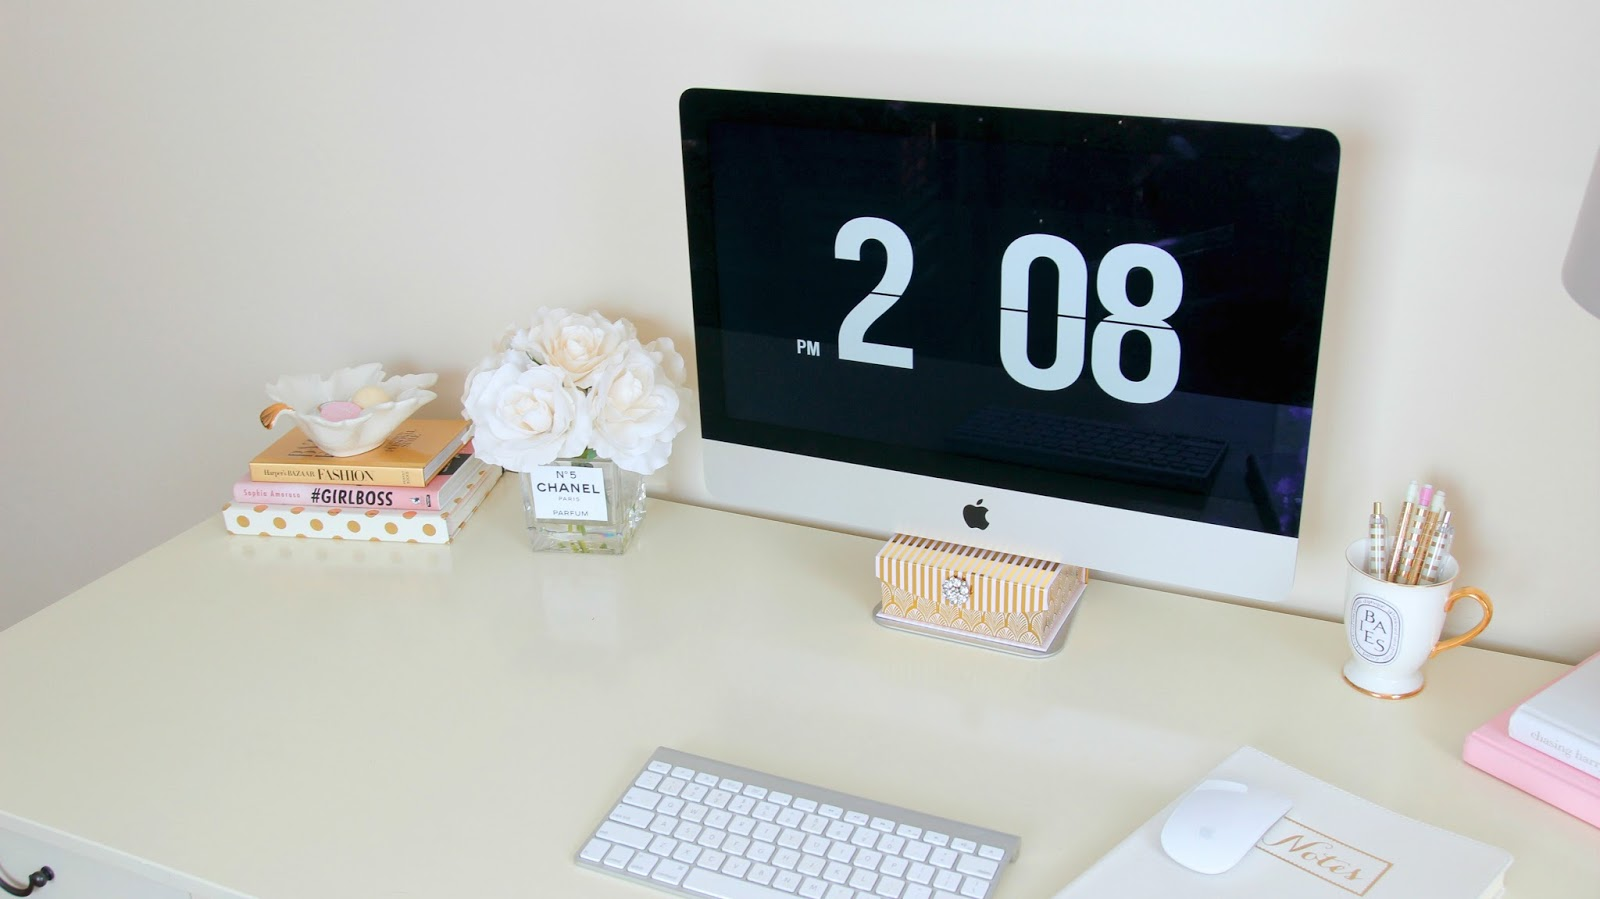 Girly Desk - Girl Boss - Imac - Clock Screen Saver